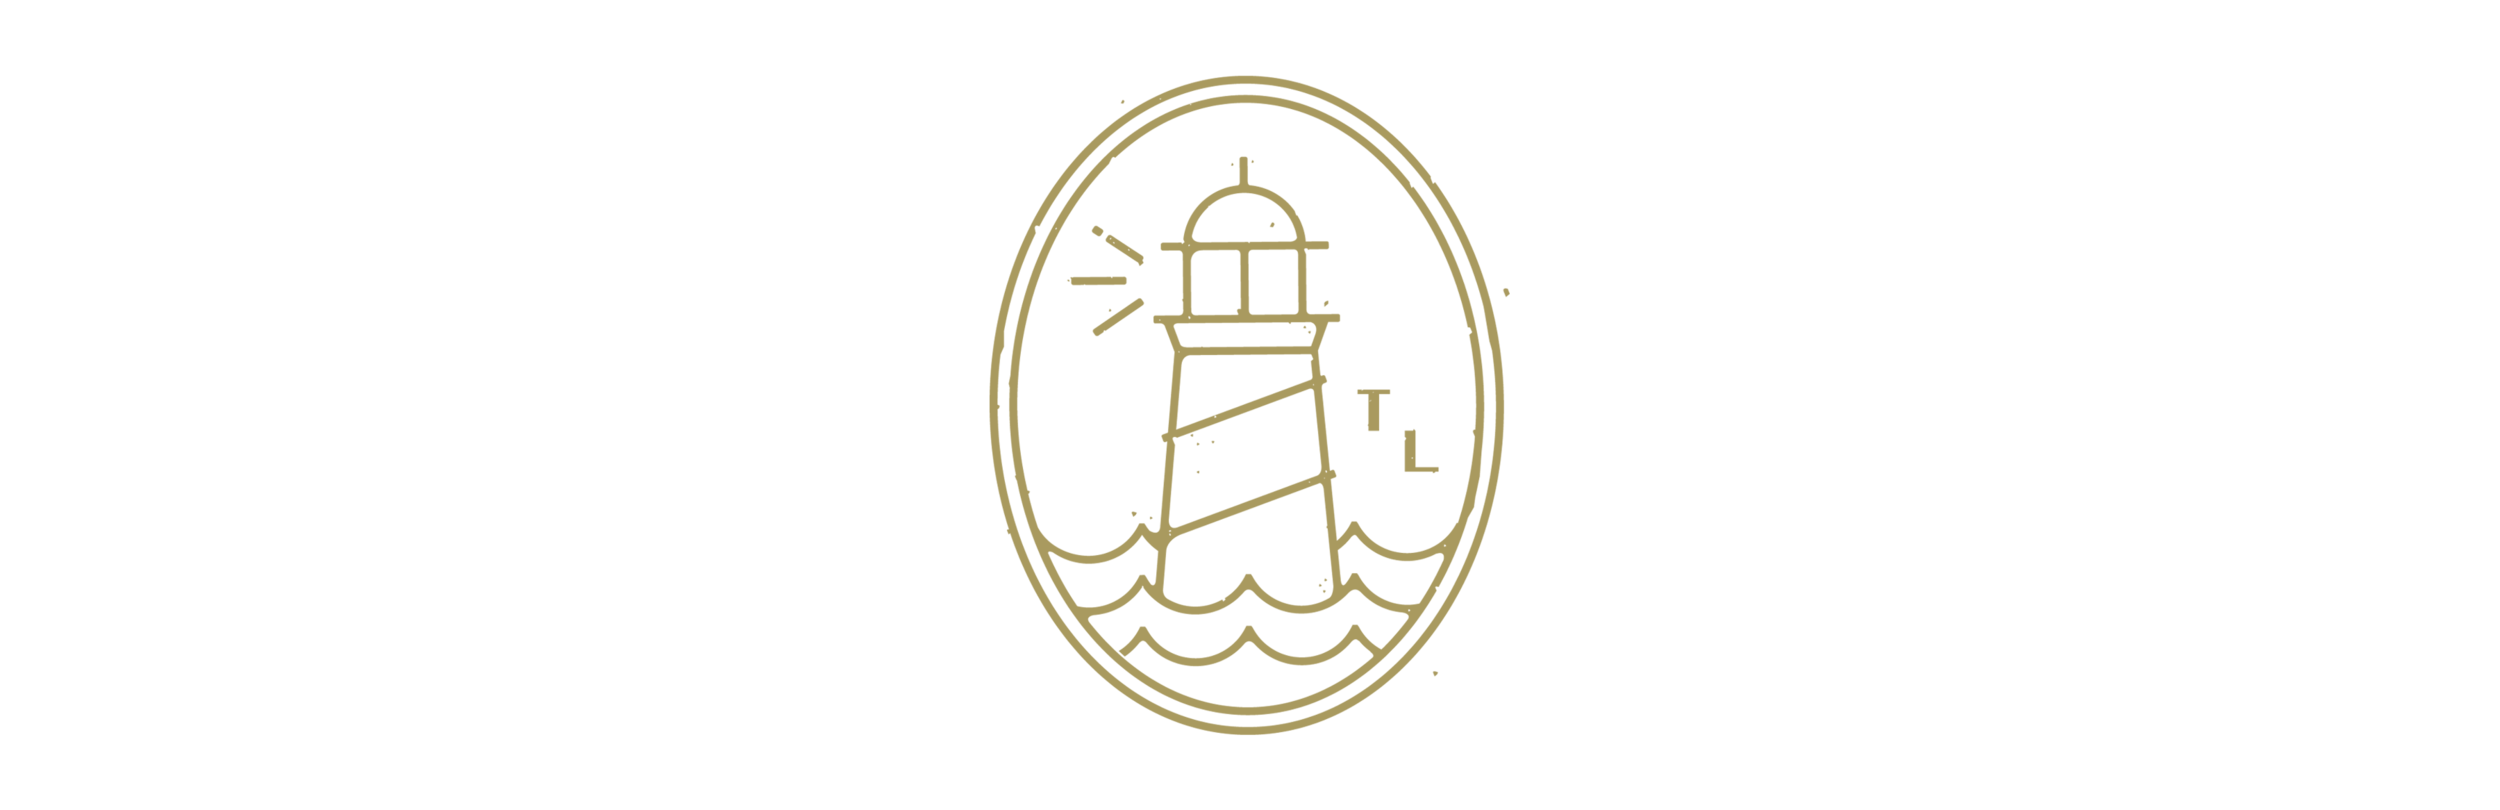 TL-rgb-gold-lighthouse-small.png